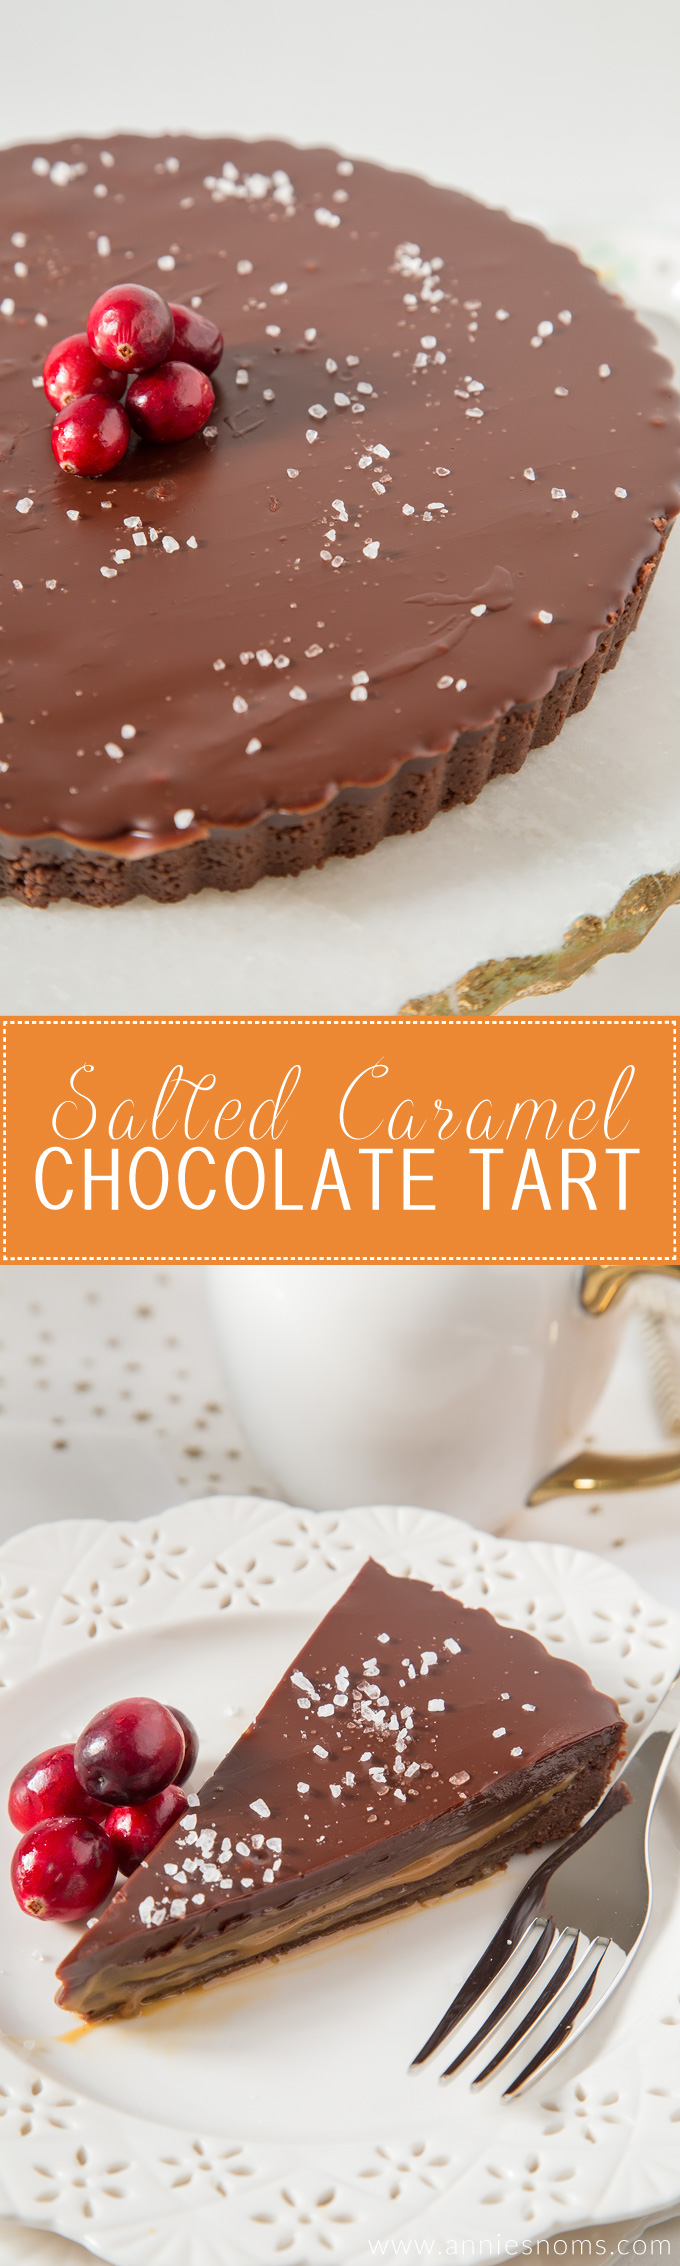 This no-bake Salted Caramel Chocolate Tart is rich, decadent and ridiculously easy to make! The sweet caramel cuts through the chocolate creating one heavenly dessert!